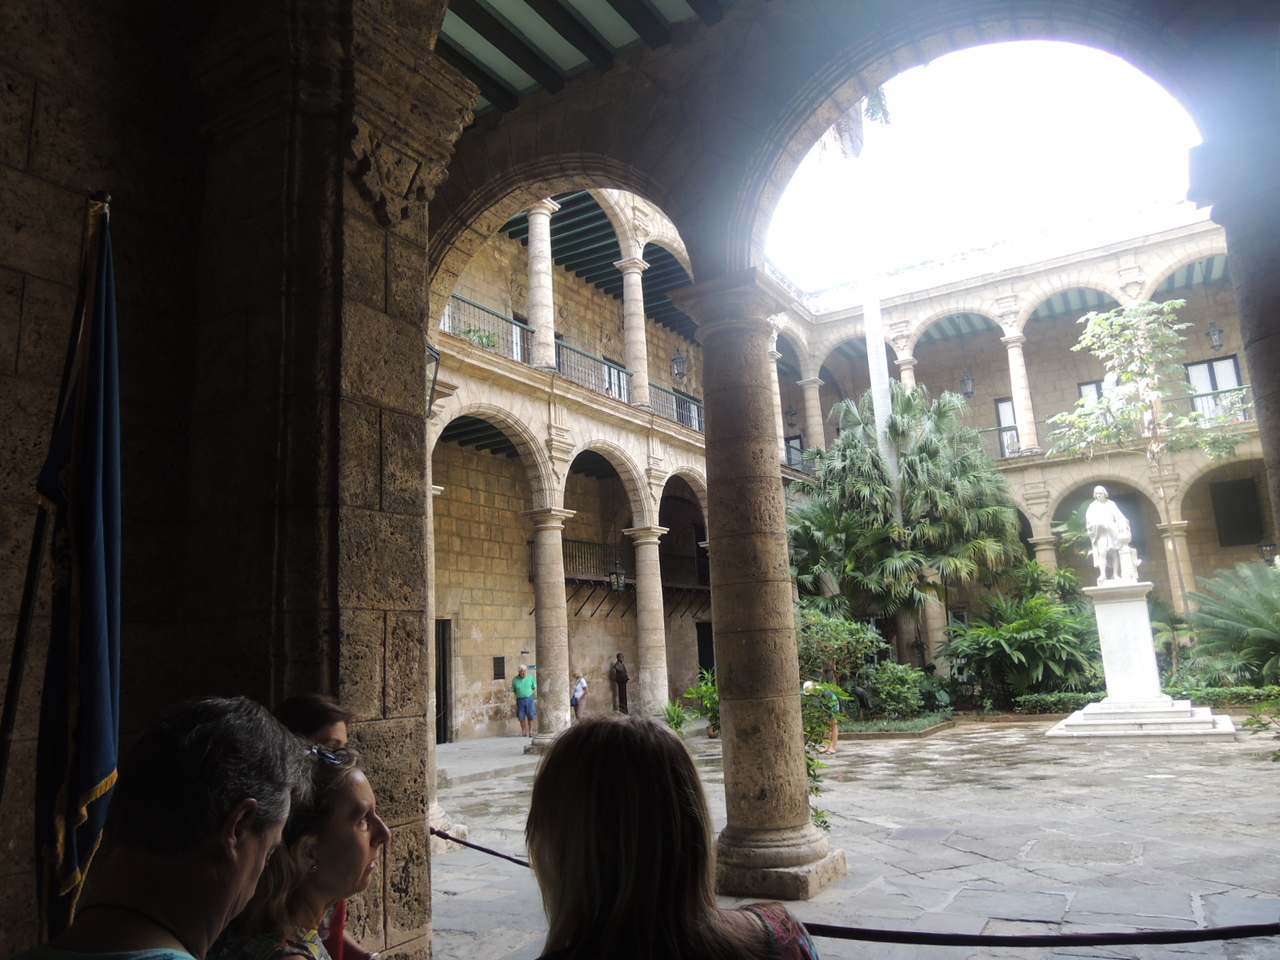 Another view of the courtyard.